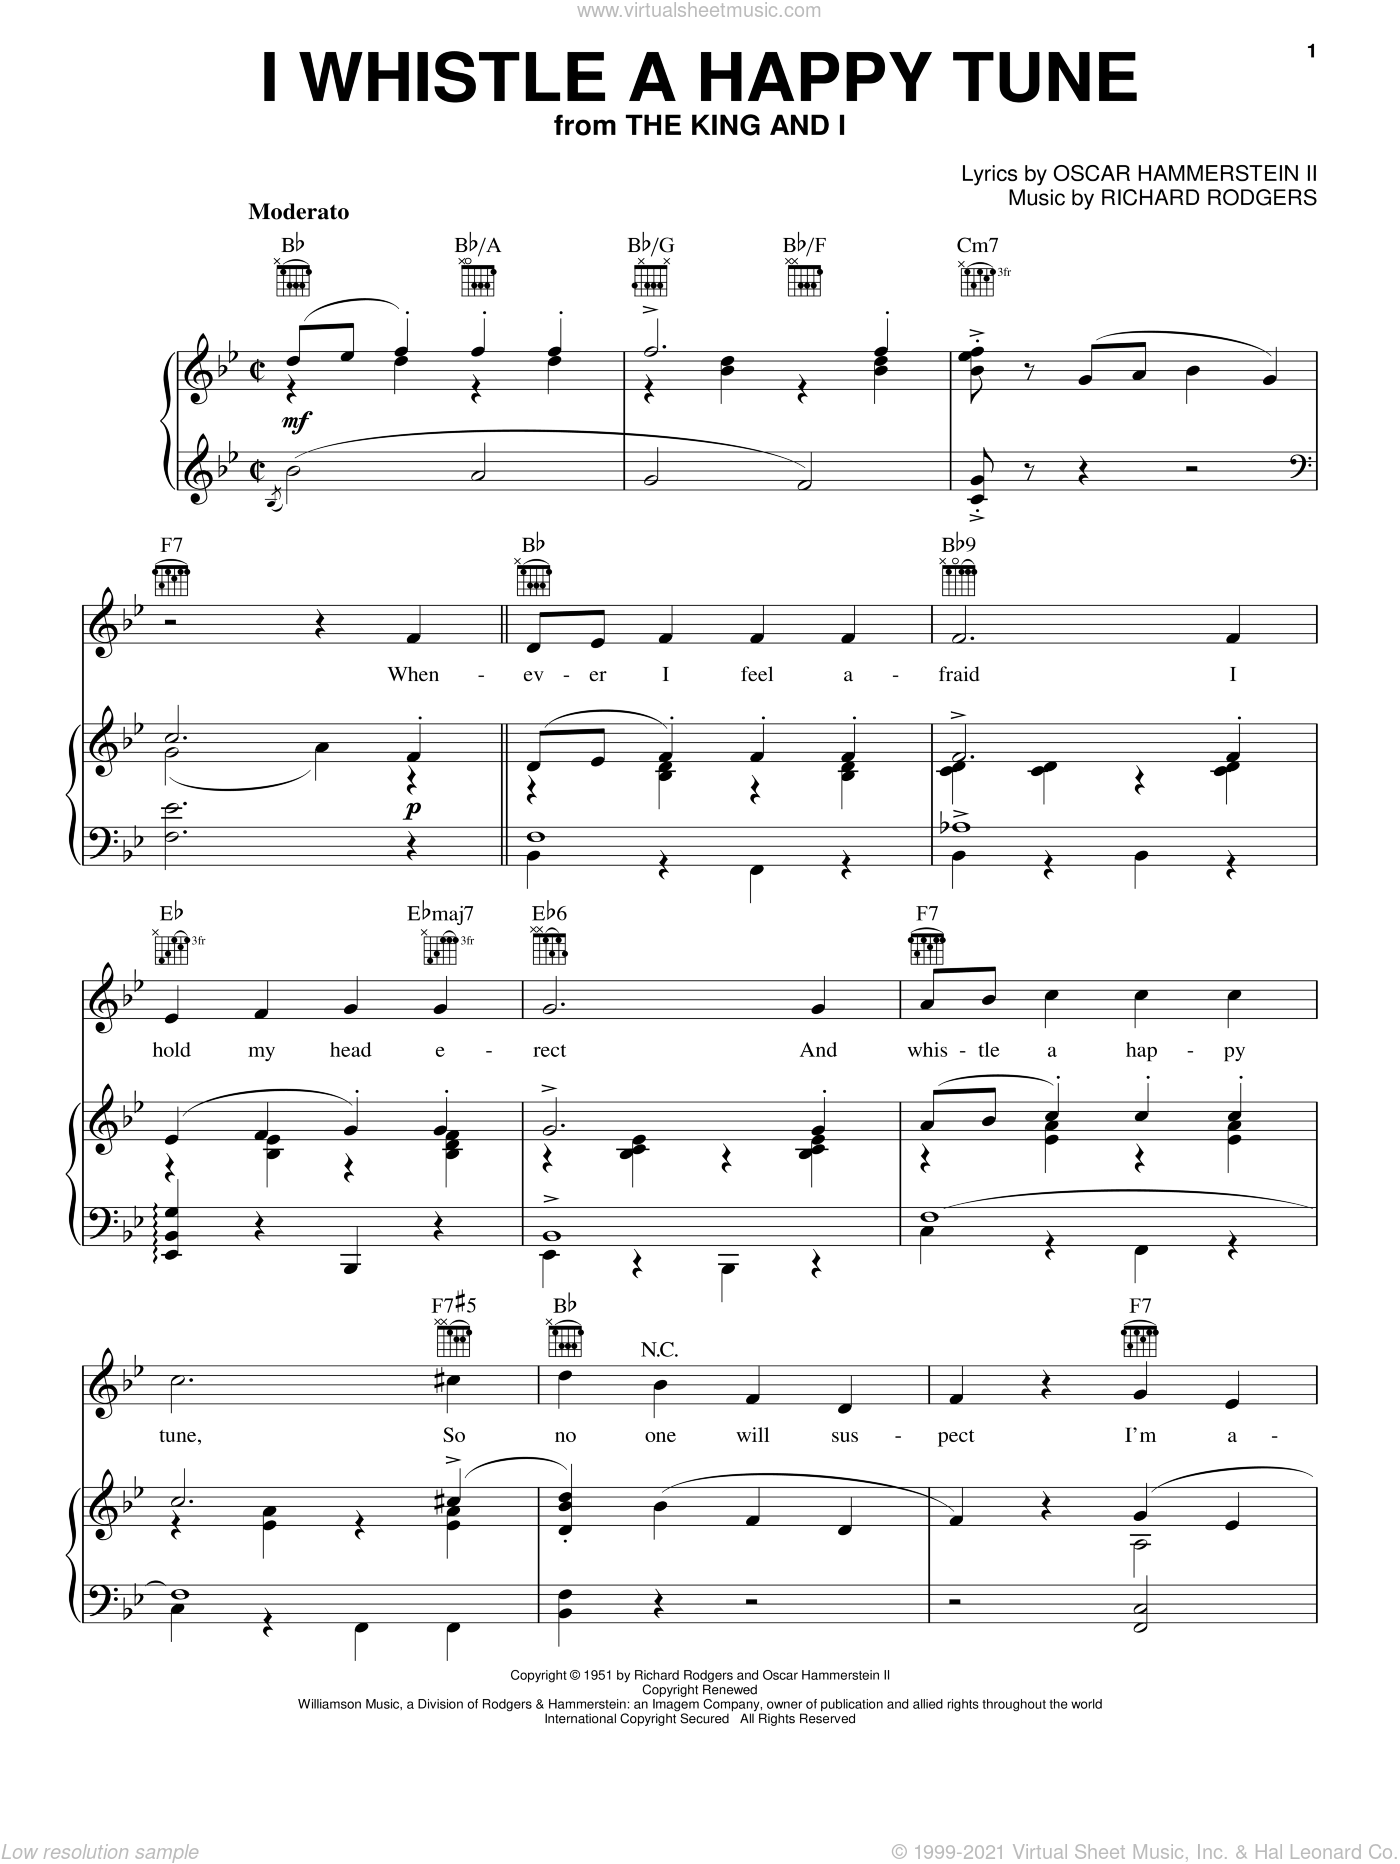 I Whistle A Happy Tune sheet music for voice, piano or guitar by Rodgers & Hammerstein, The King And I (Musical), Oscar II Hammerstein and Richard Rodgers, intermediate skill level